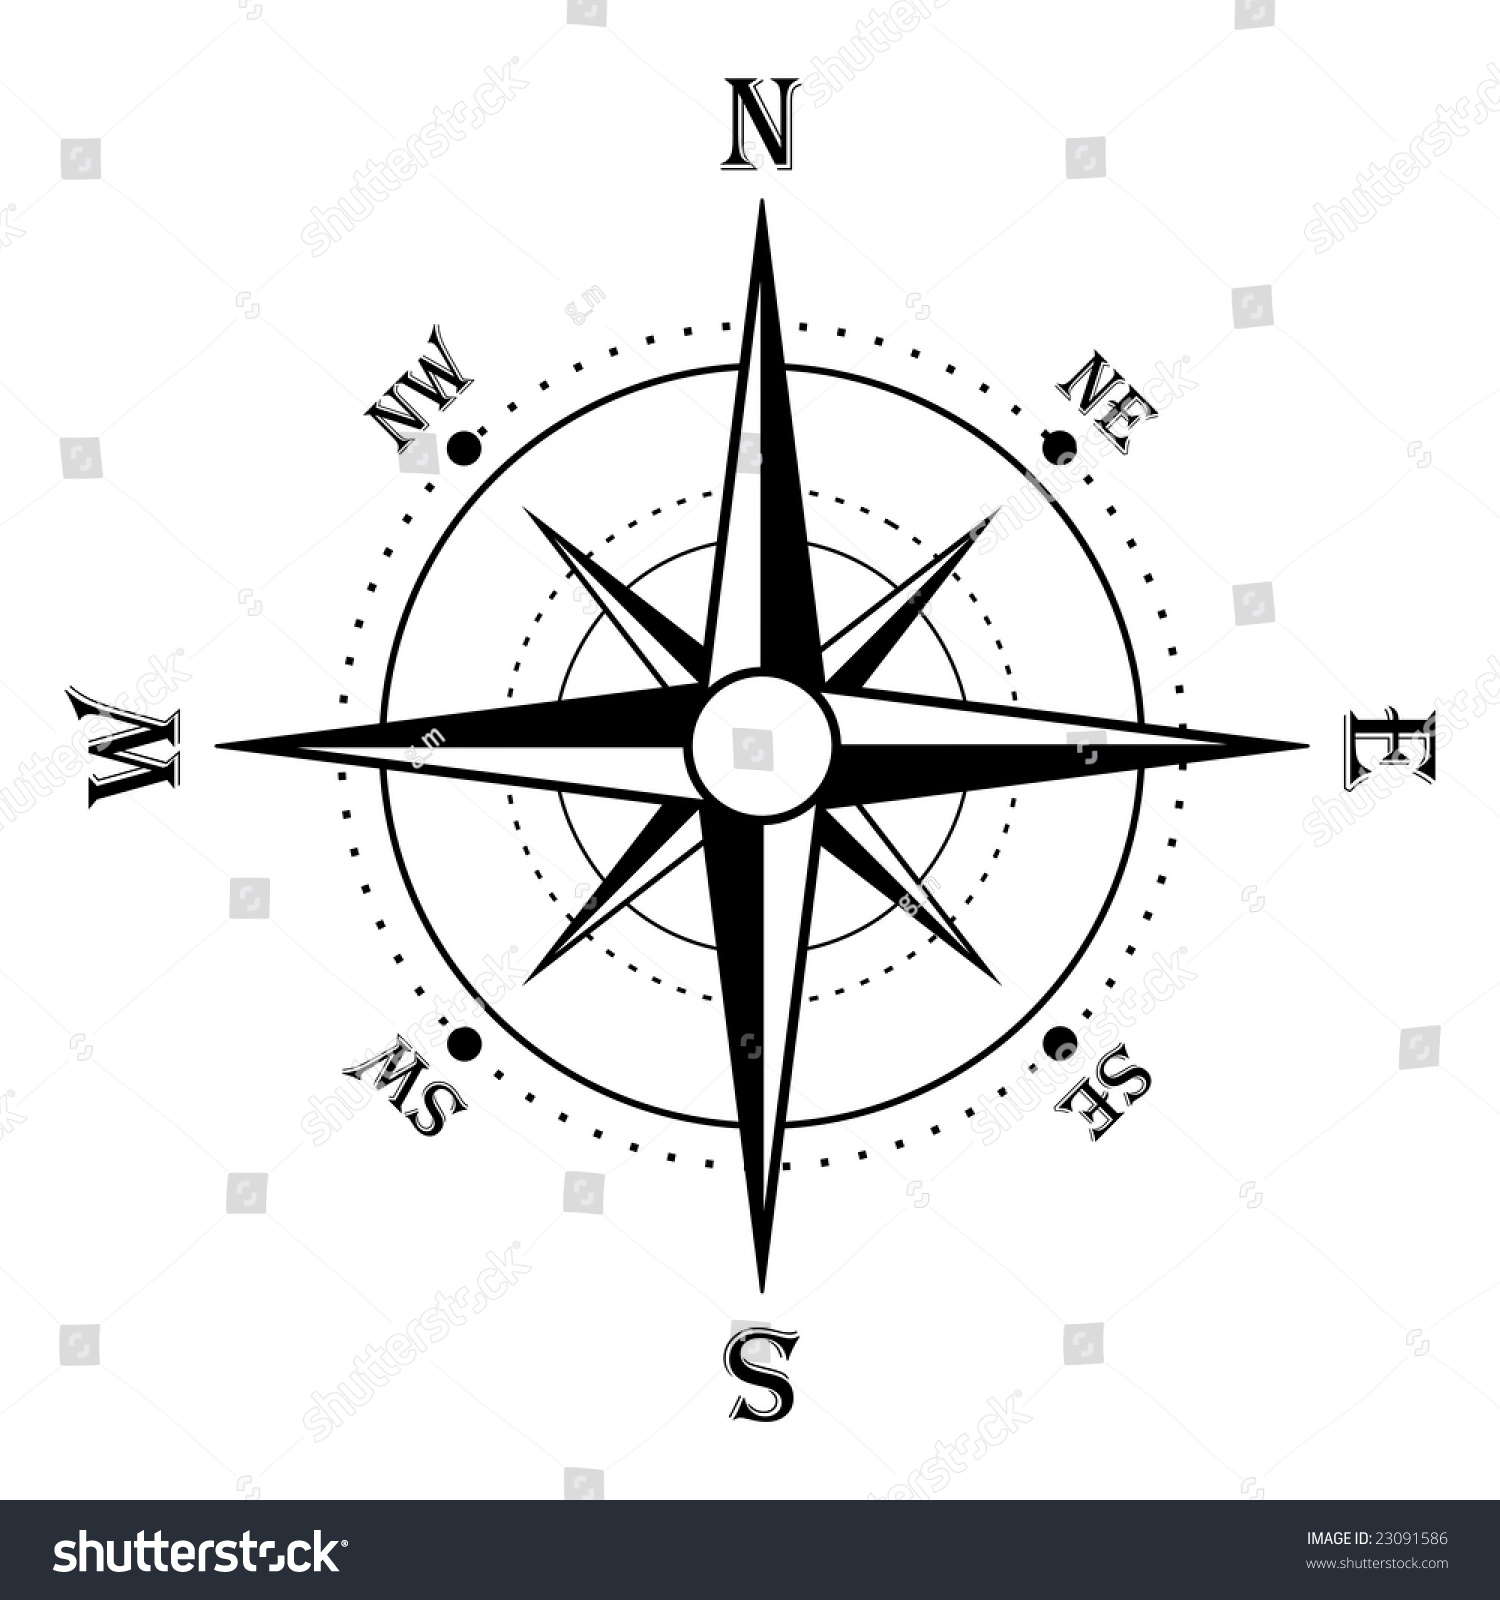 Compass Rose Black White Stock Illustration 23091586 - Shutterstock